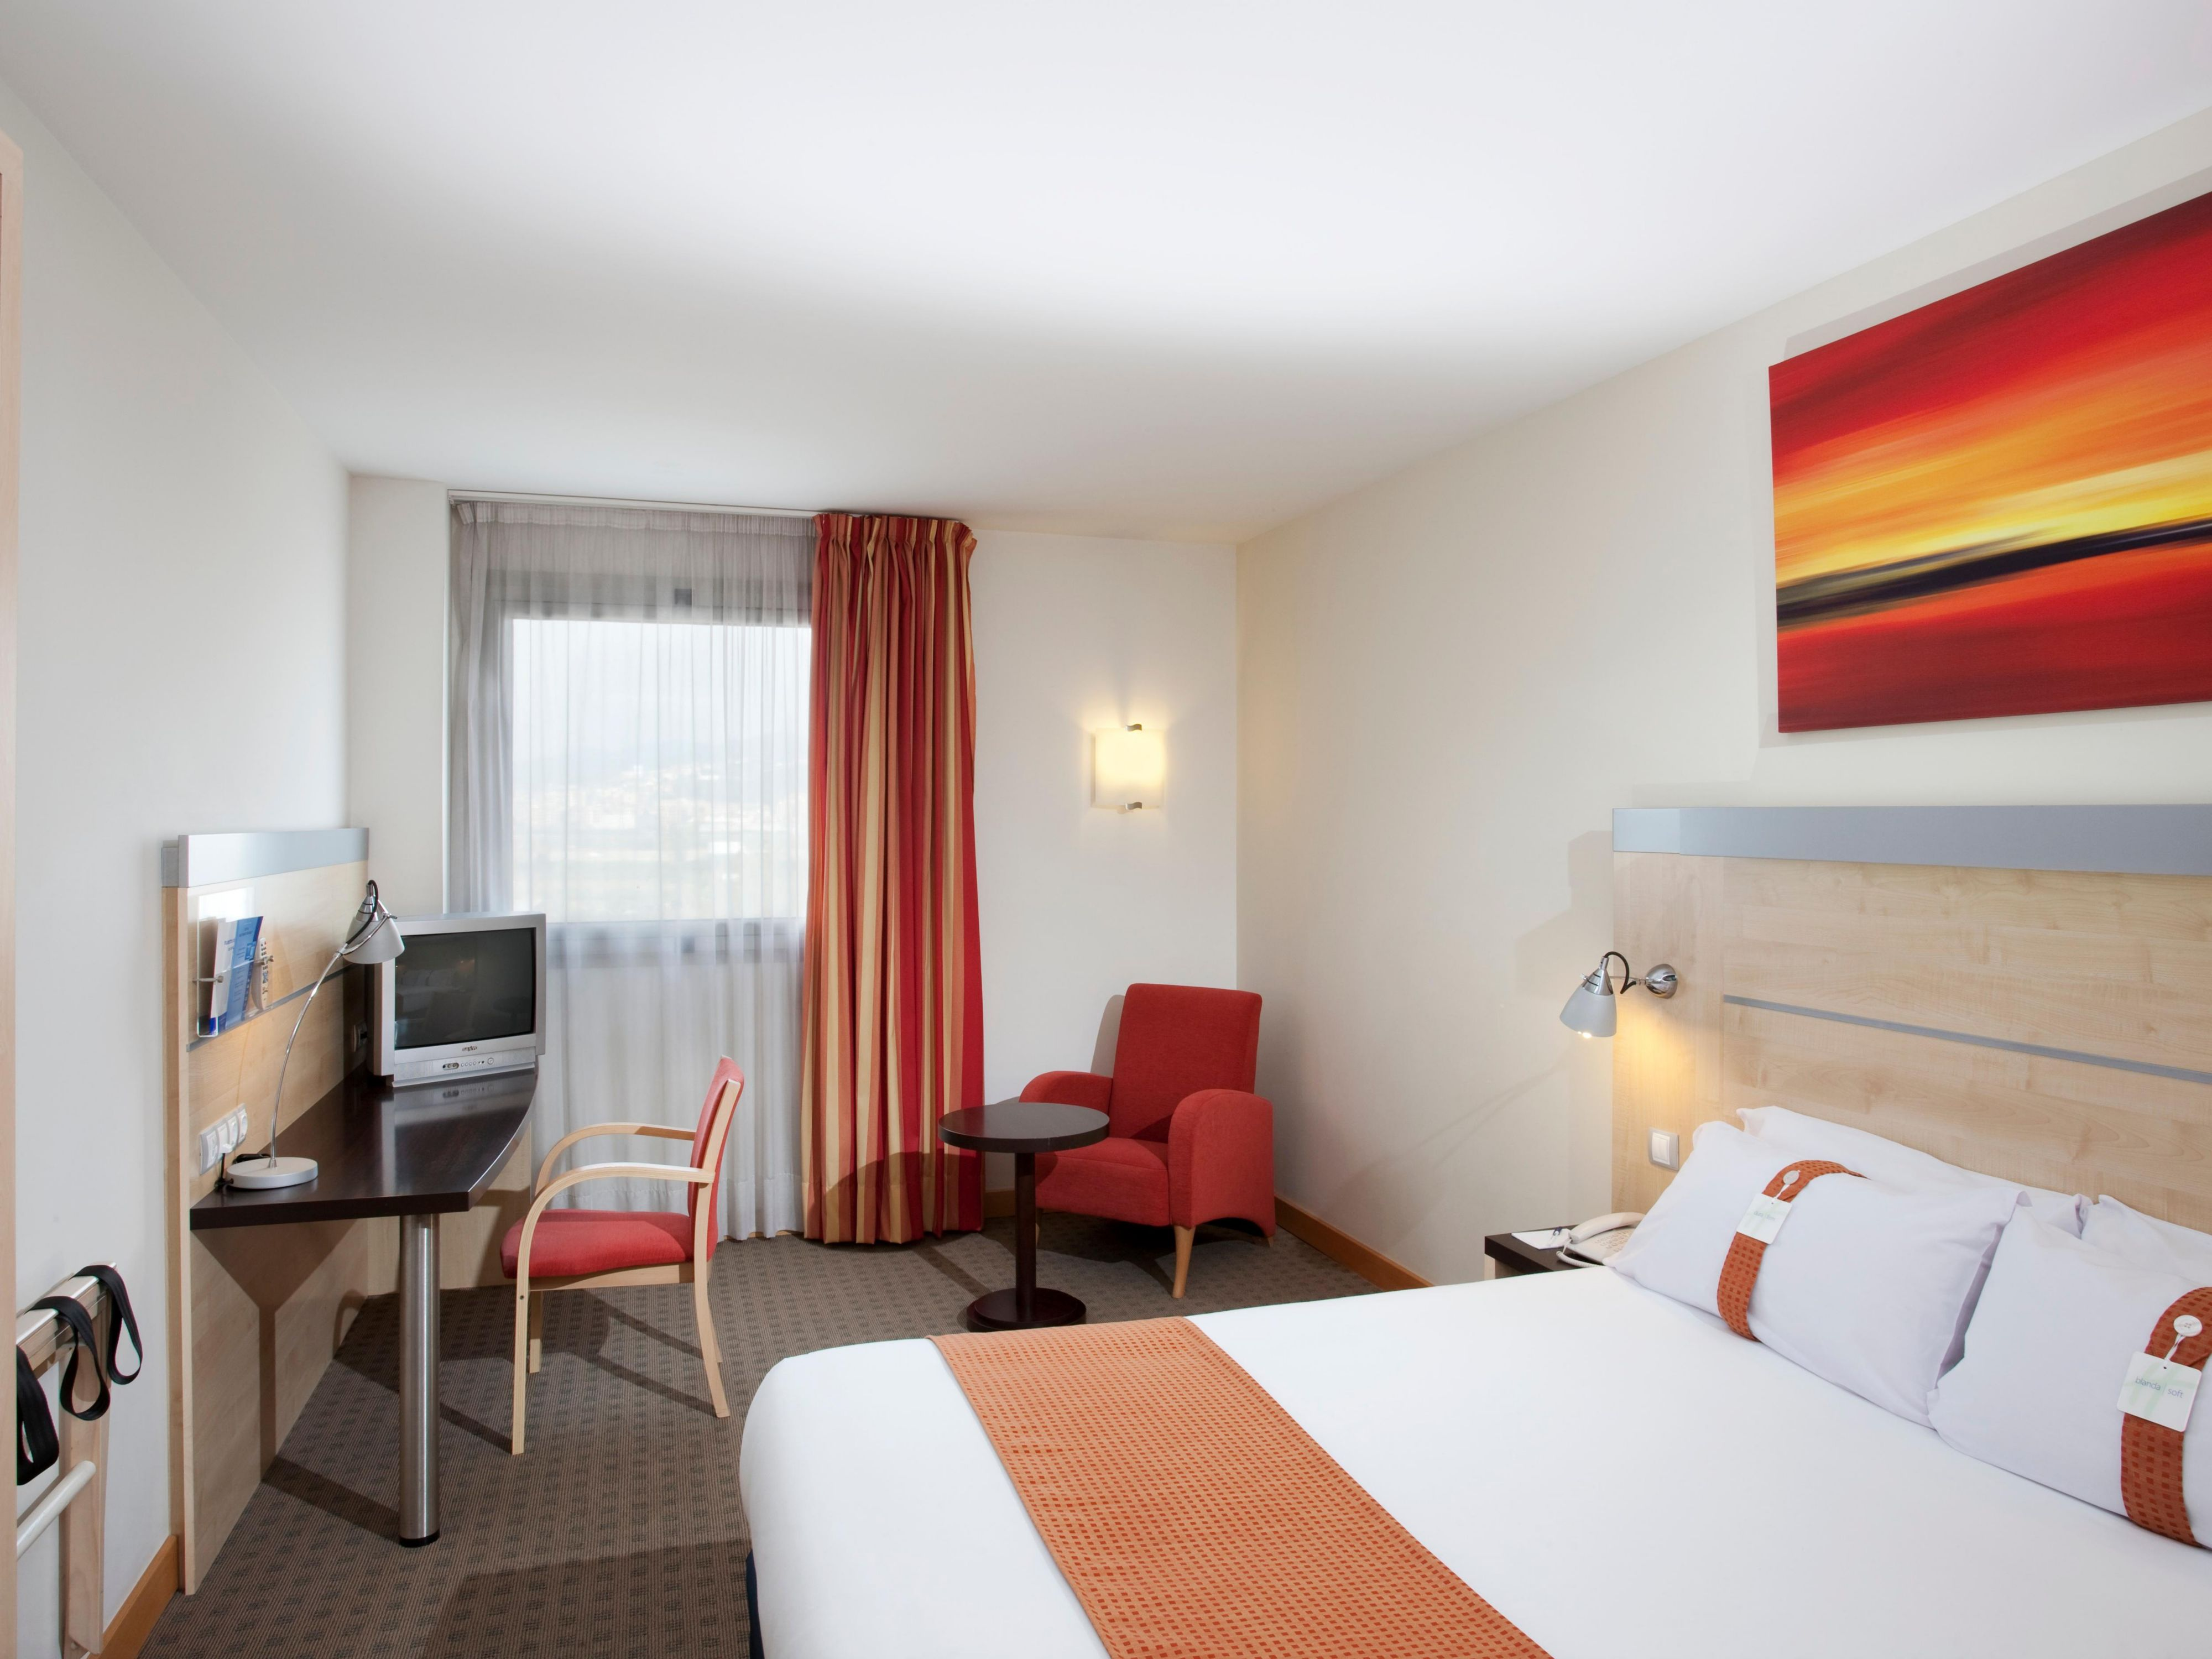 Stay in our fresh and comfortable rooms